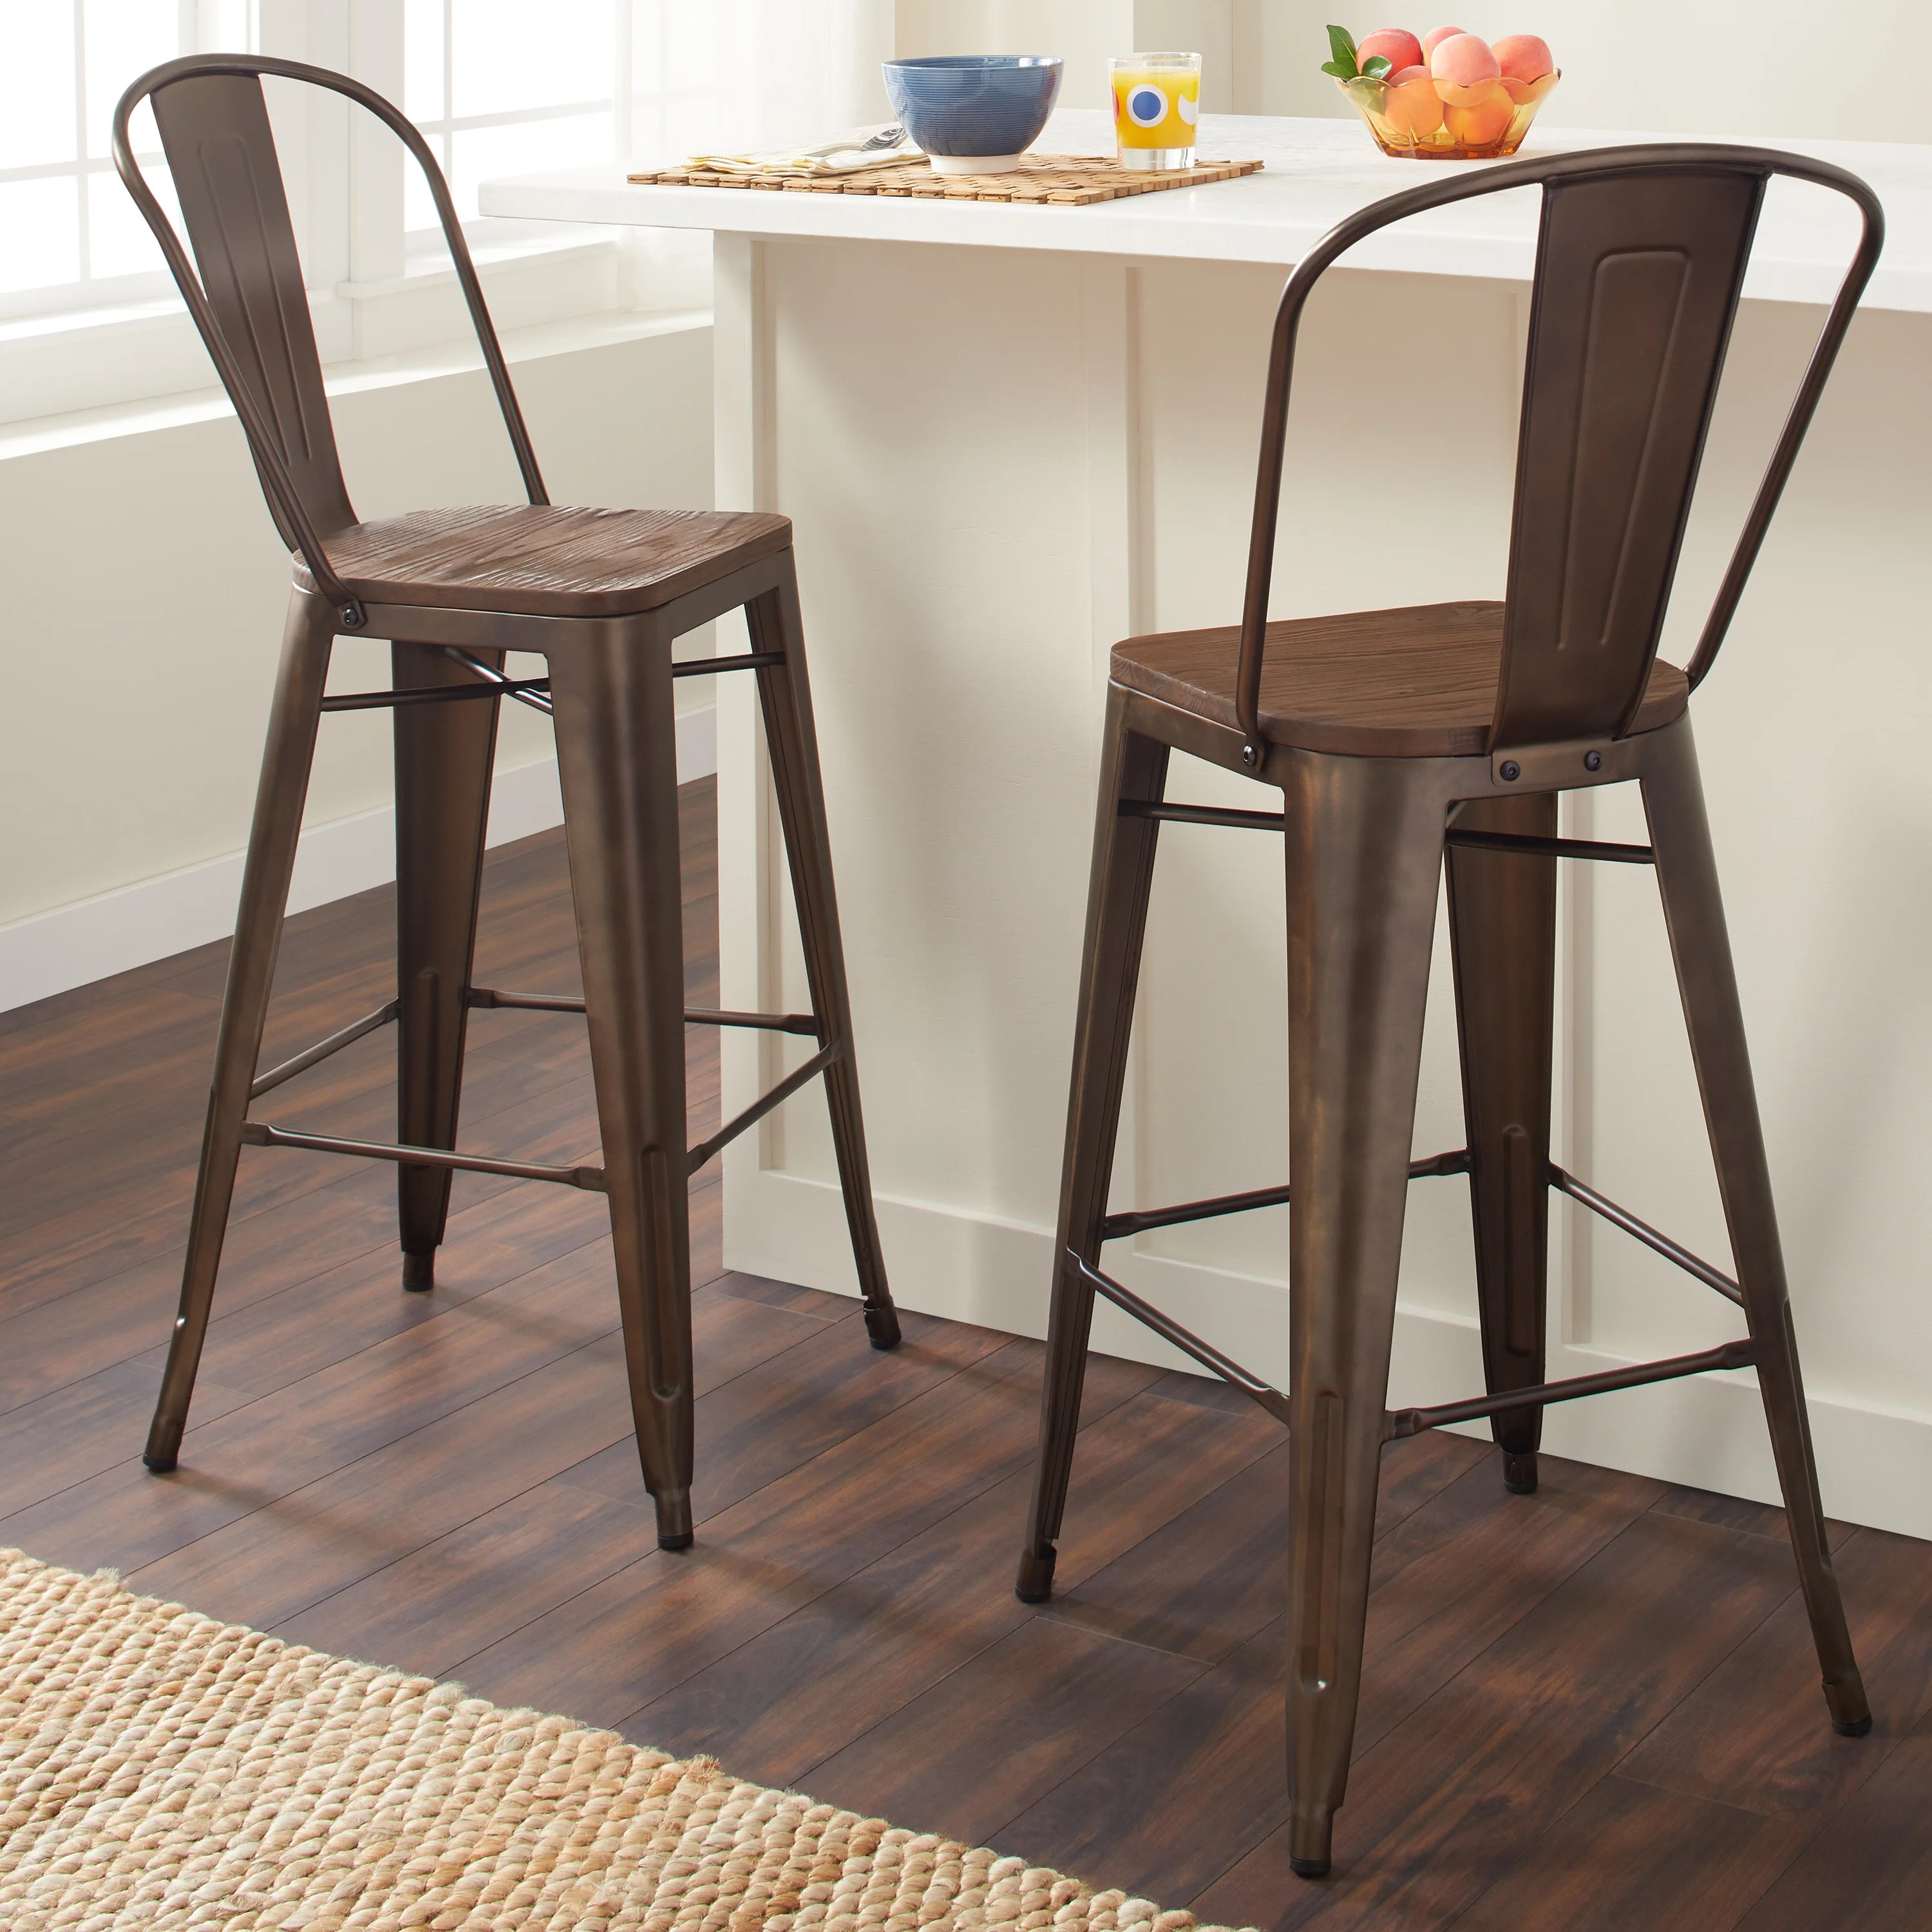 bar stool chair rung protectors rentals in md www topsimages com shop tabouret inch bistro wood seat vintage finish stools set of on sale free shipping